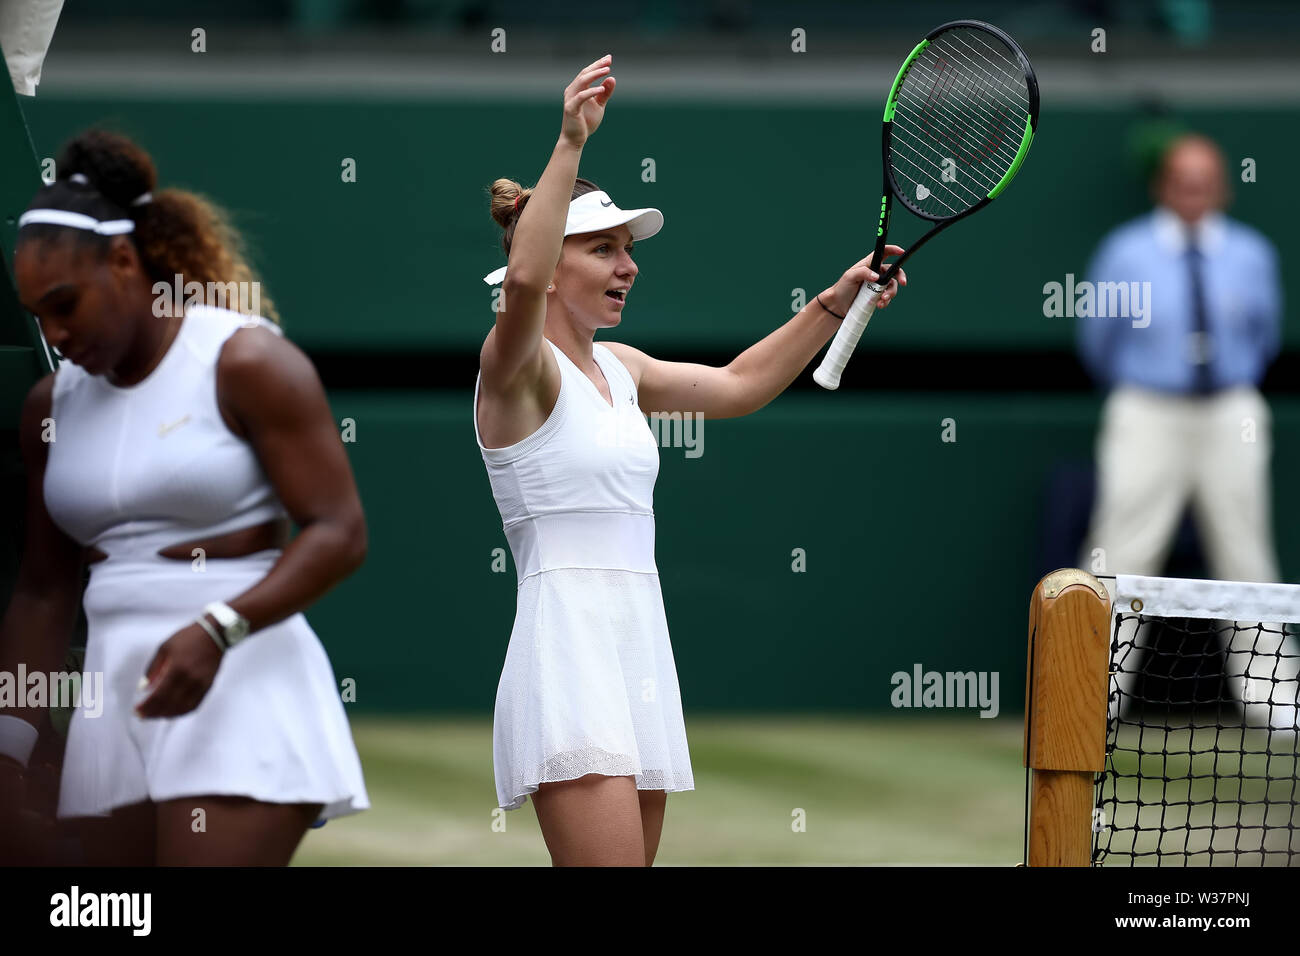 London, UK. 13th July, 2019.London, UK. 13th July, 2019. The All England Lawn Tennis and Croquet Club, Wimbledon, England, Wimbledon Tennis Tournament, Day 12; Simona Halep (ROM) celebrates as she wins the ladies singles final against Serena Williams (USA) Credit: Action Plus Sports Images/Alamy Live News Credit: Action Plus Sports Images/Alamy Live News - Stock Image